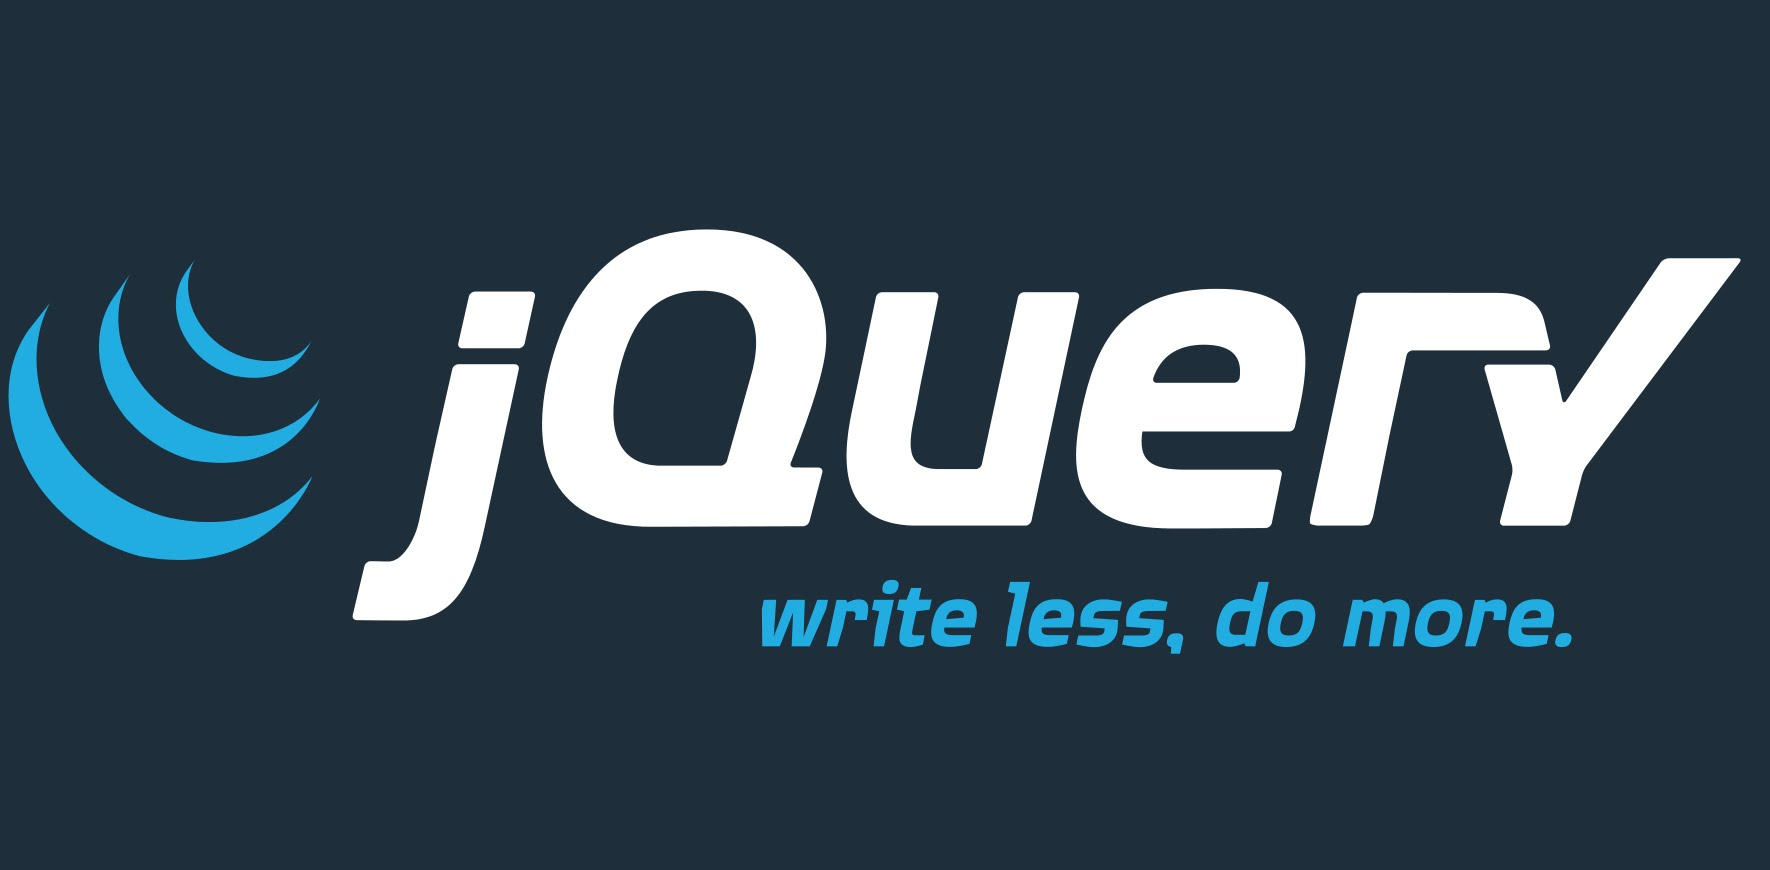 How to Control CSS with jQuery